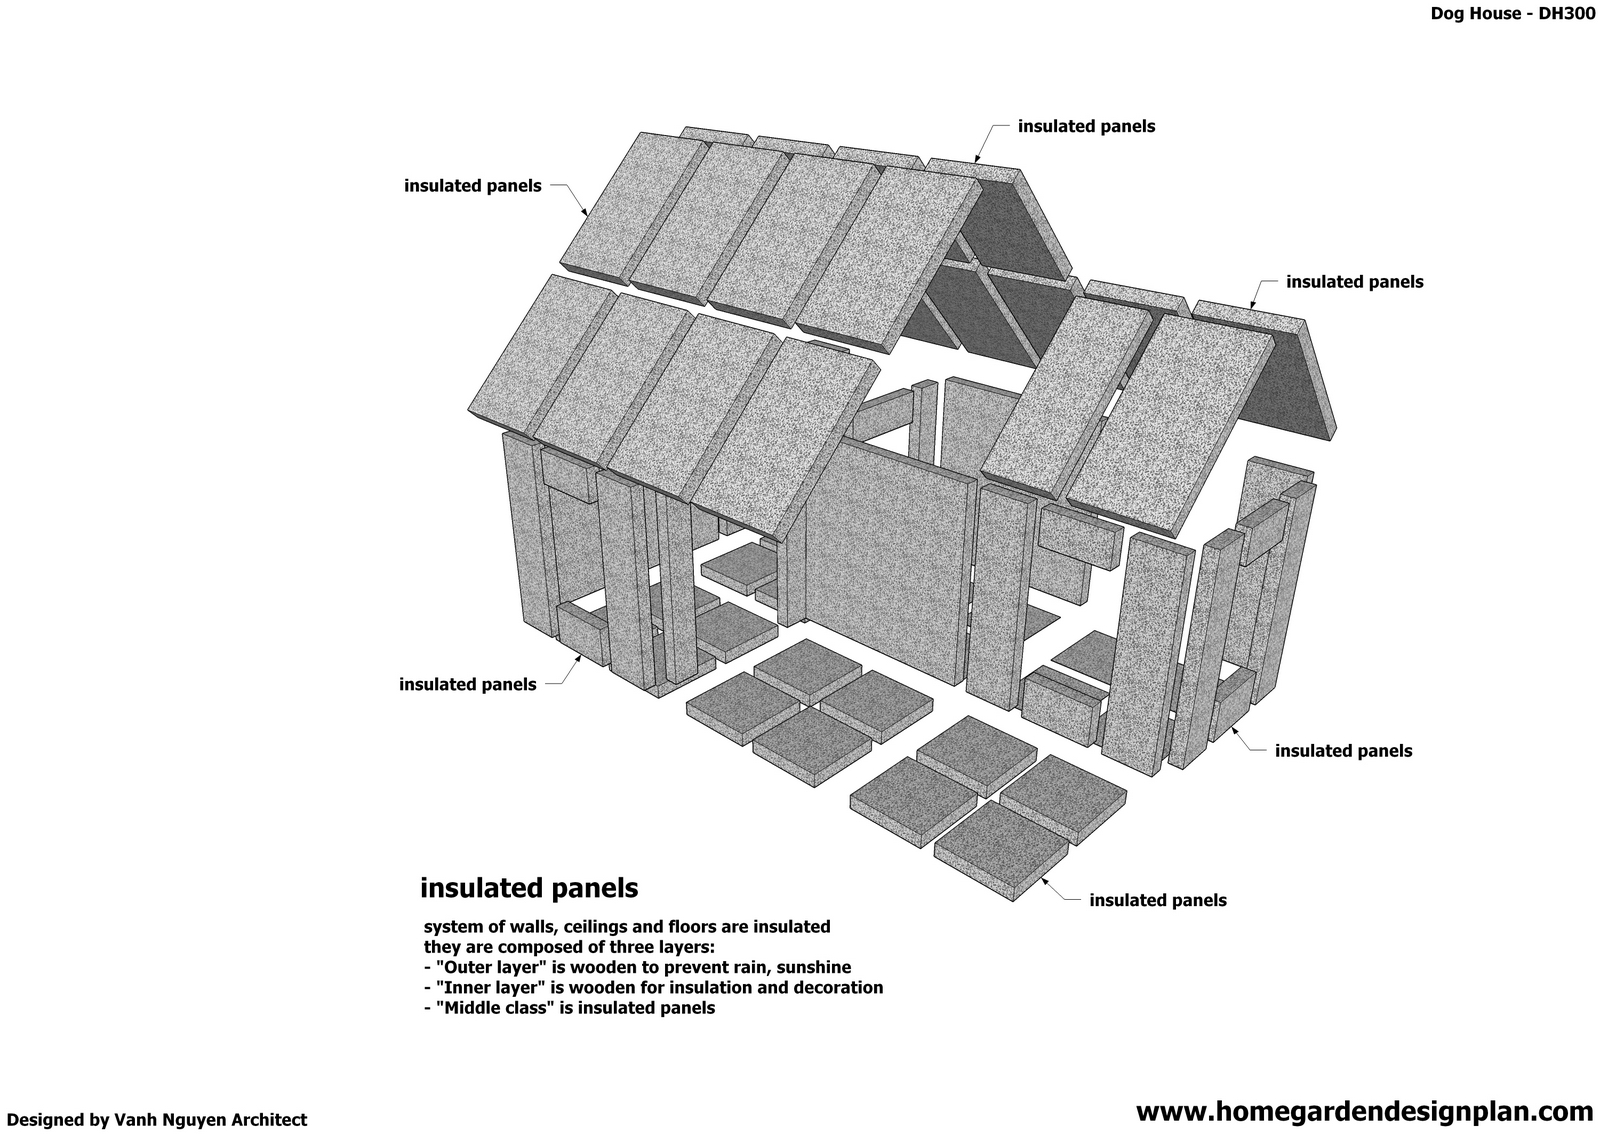 Home Garden Plans: DH300   Dog House Plans Free   How To Build An Insulated  Dog House   Insulated Dog House Plans For Construction